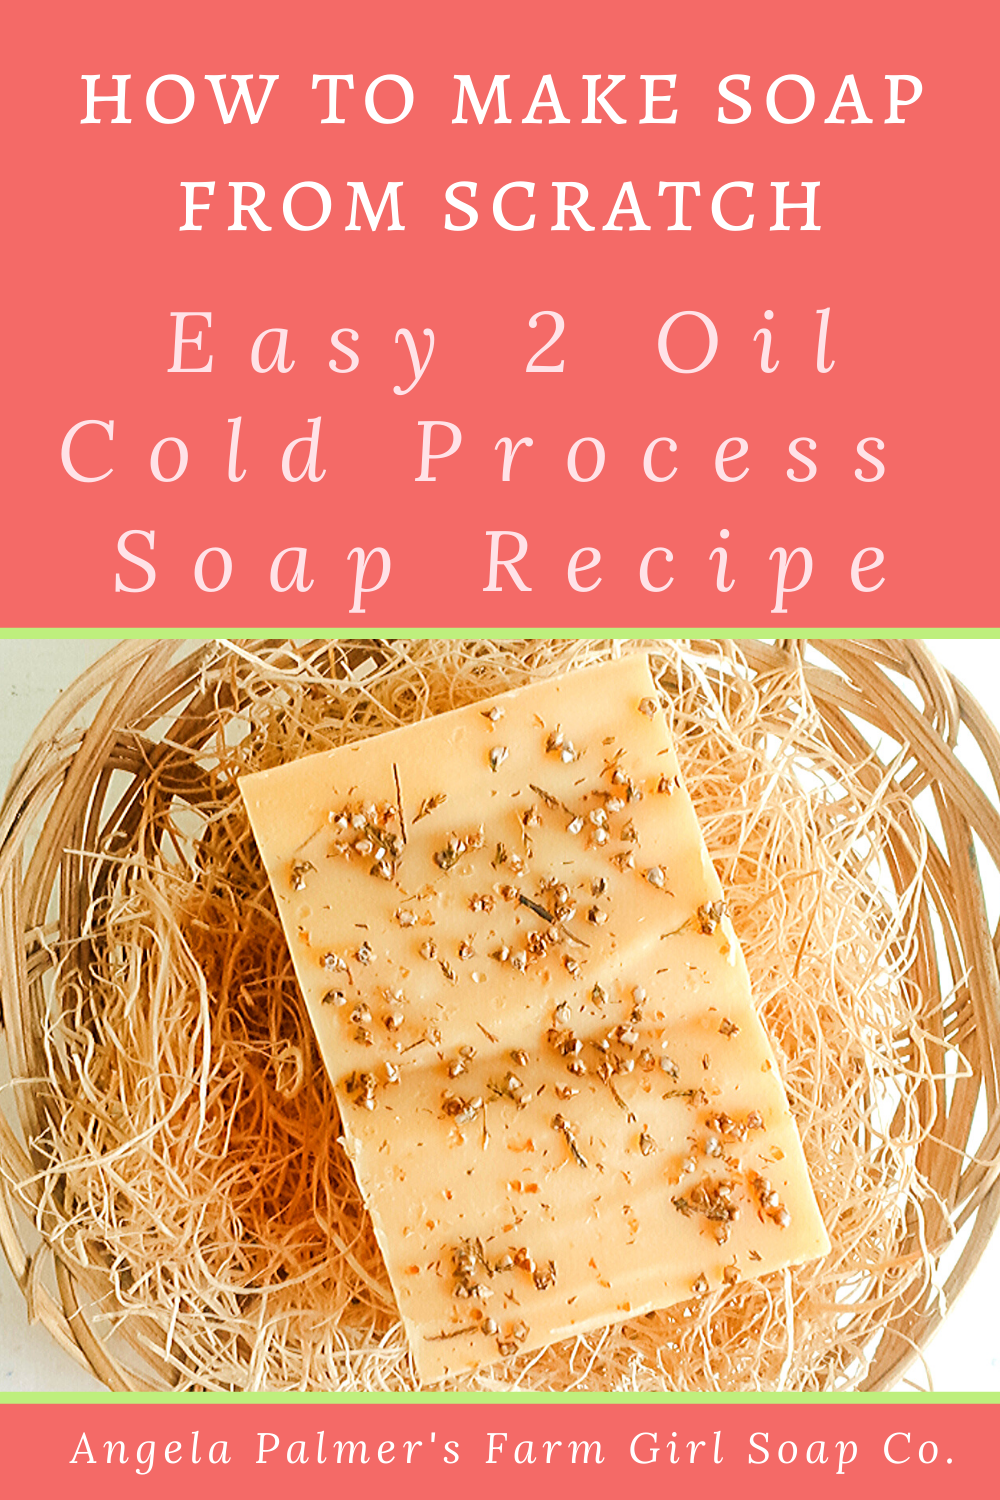 Want to learn how to make soap from scratch? This easy 2 oil cold process soap recipe is the perfect cold process soap recipe for beginners. Pin to save then click over to my farm blog to get the full soap making tutorial. By Angela Palmer at Farm Girl Soap Co.